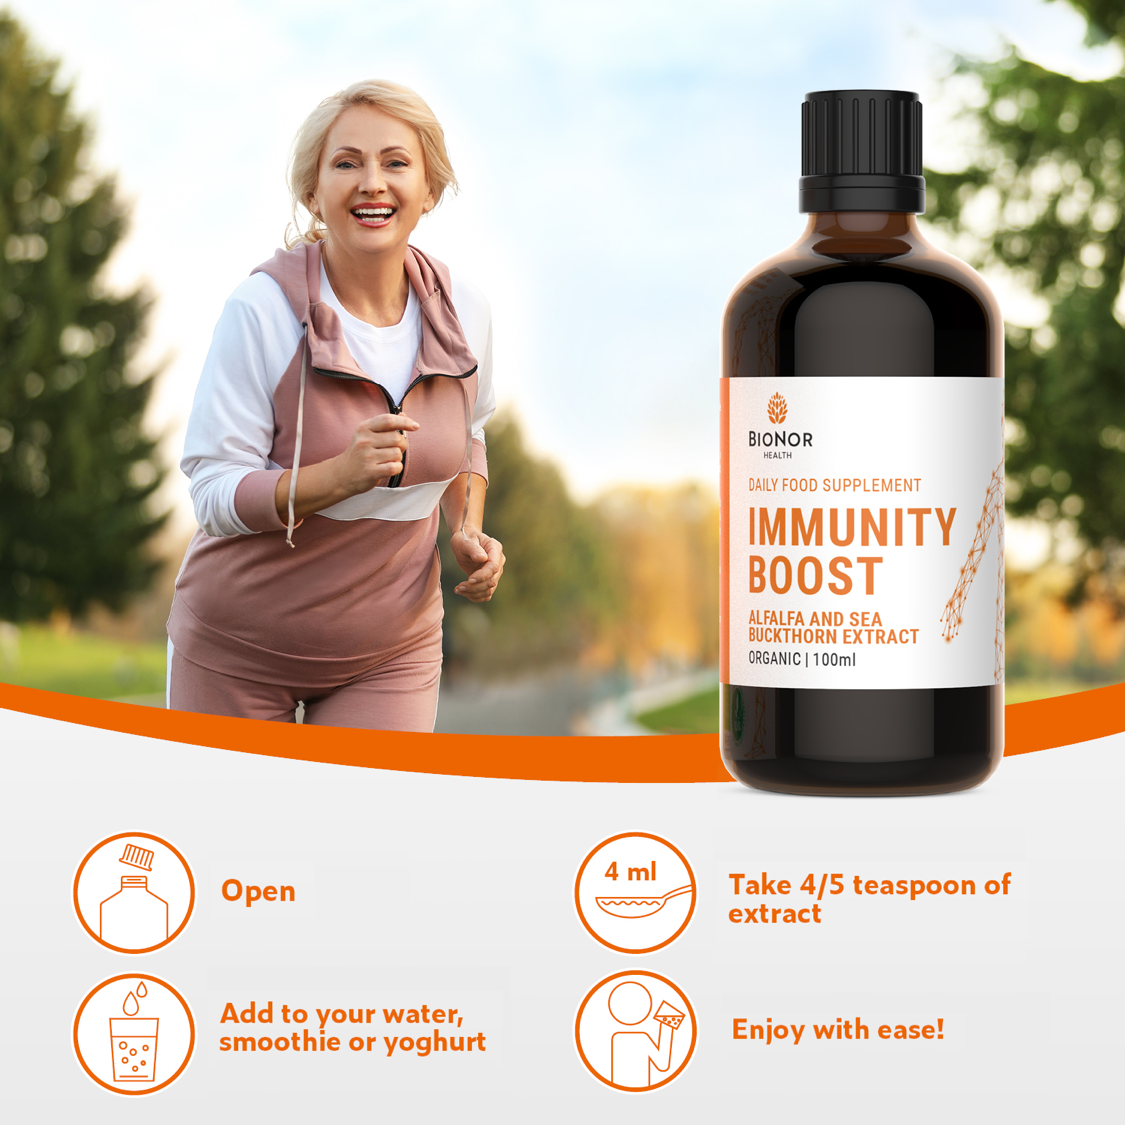 Immunity Boost with added Blood & Liver Purification benefits - BioNor Health